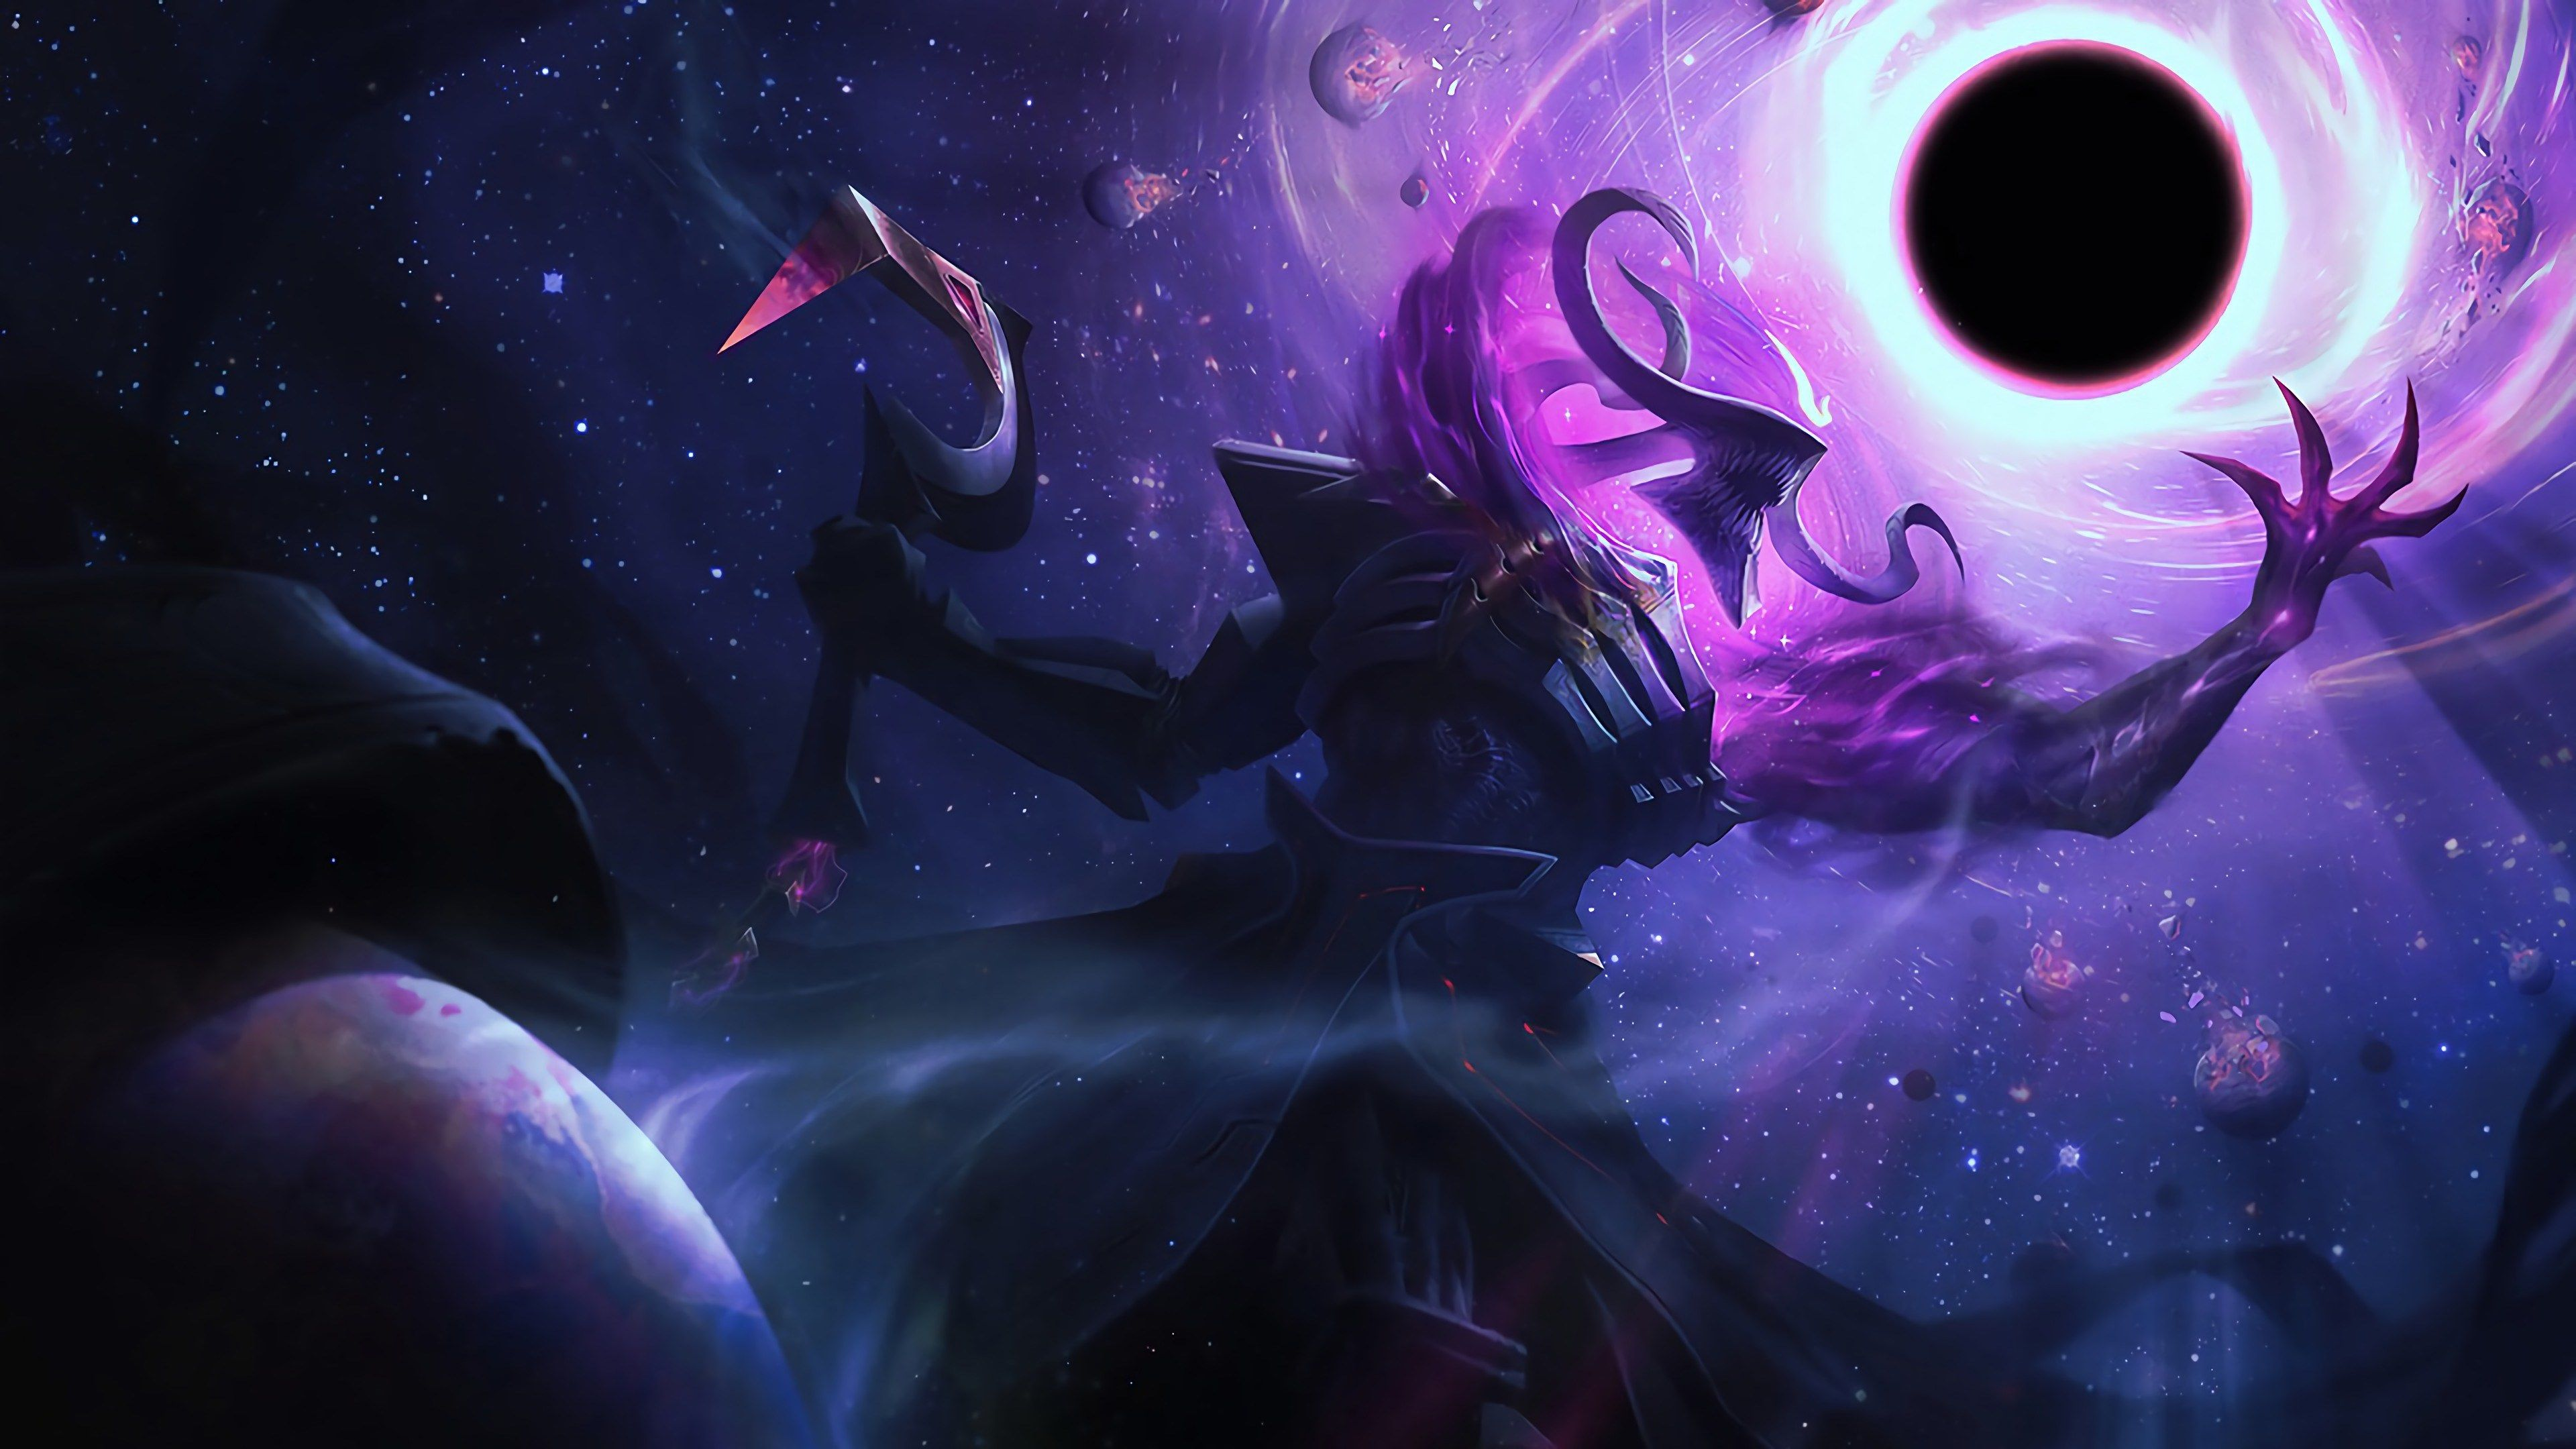 3840x2160 Dark Star Thresh 4k Wallpaper For Desktop